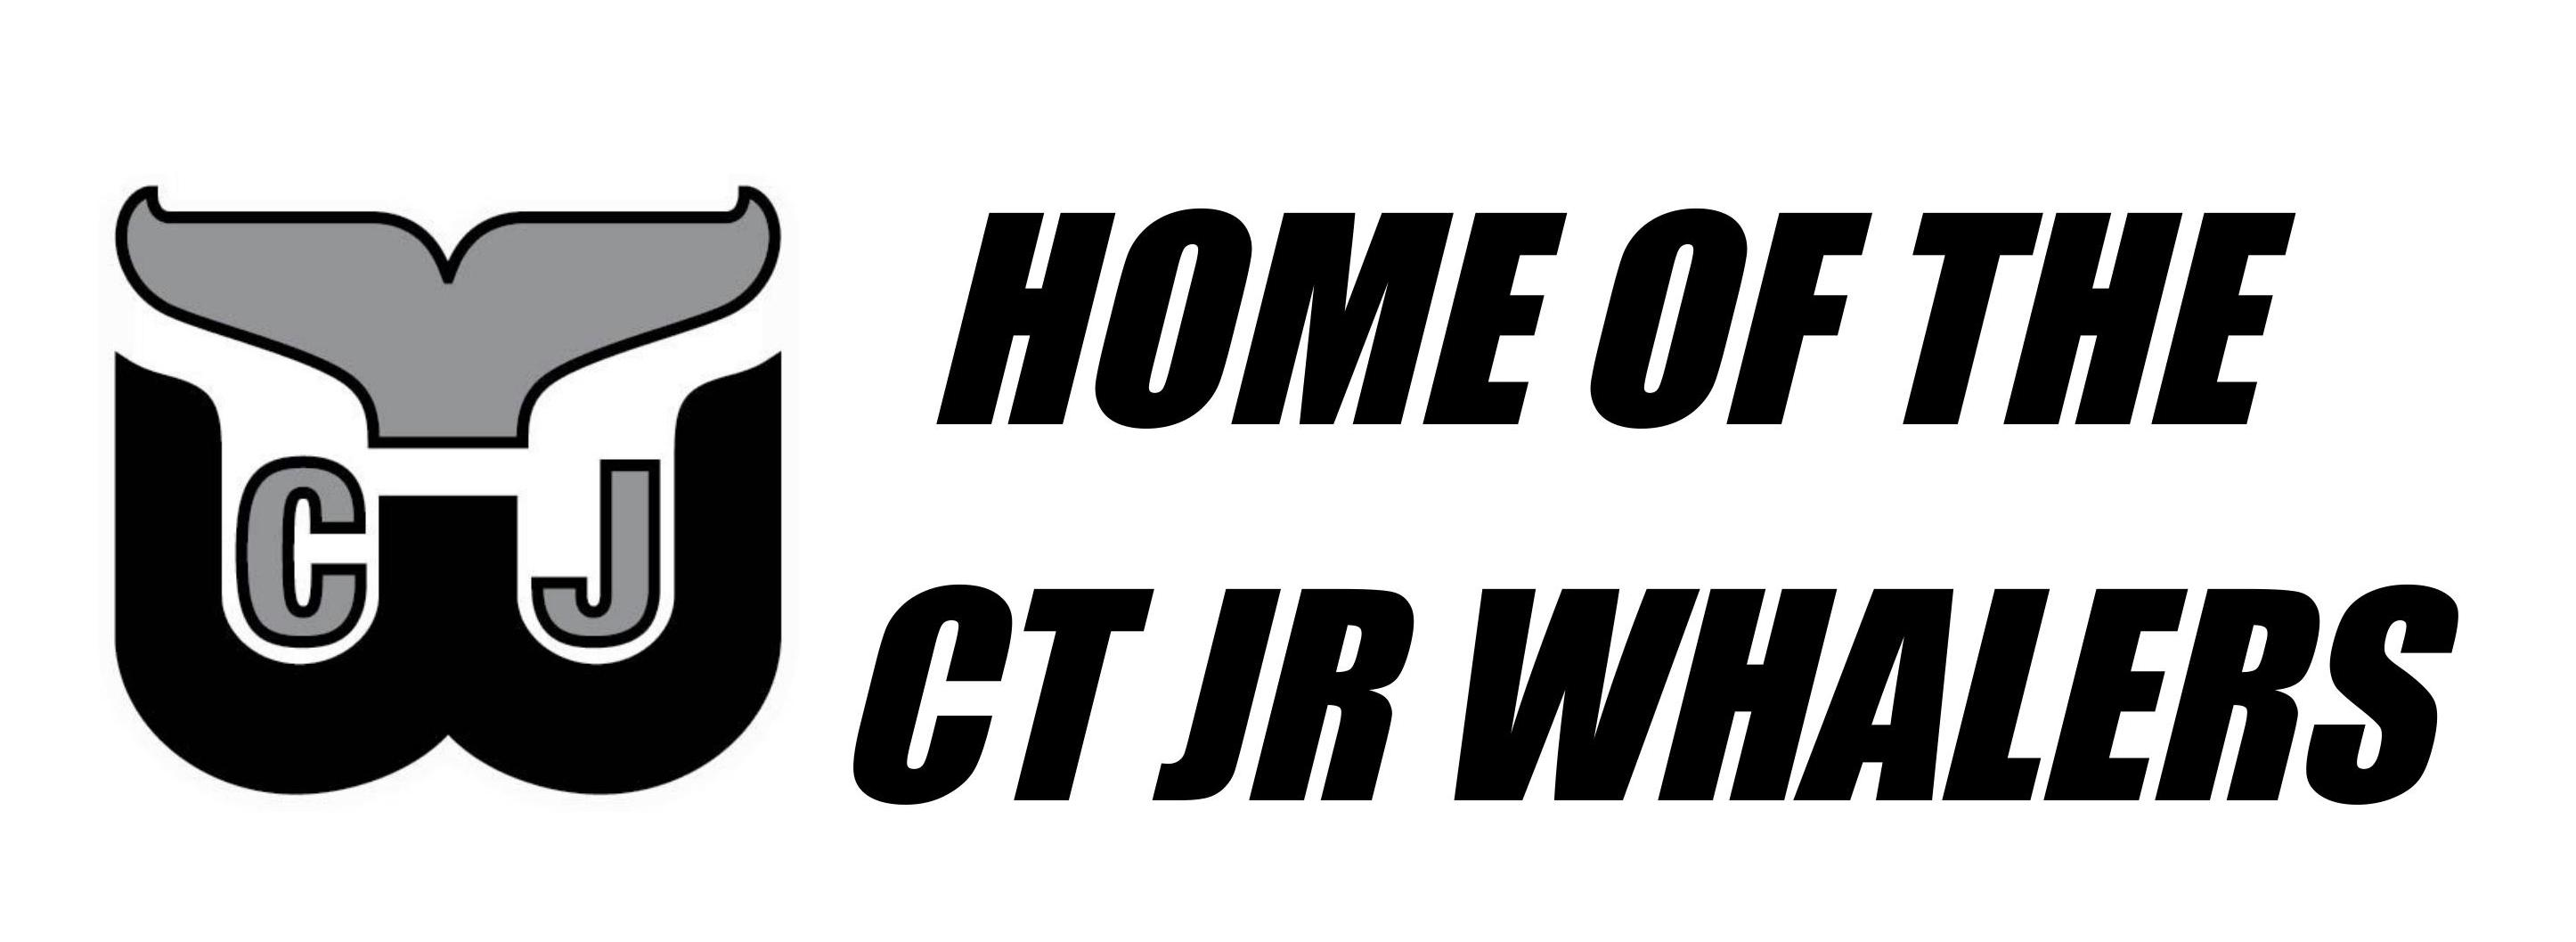 CT Jr Whalers and CT Jr Whale, Hockey, Goal, Rink